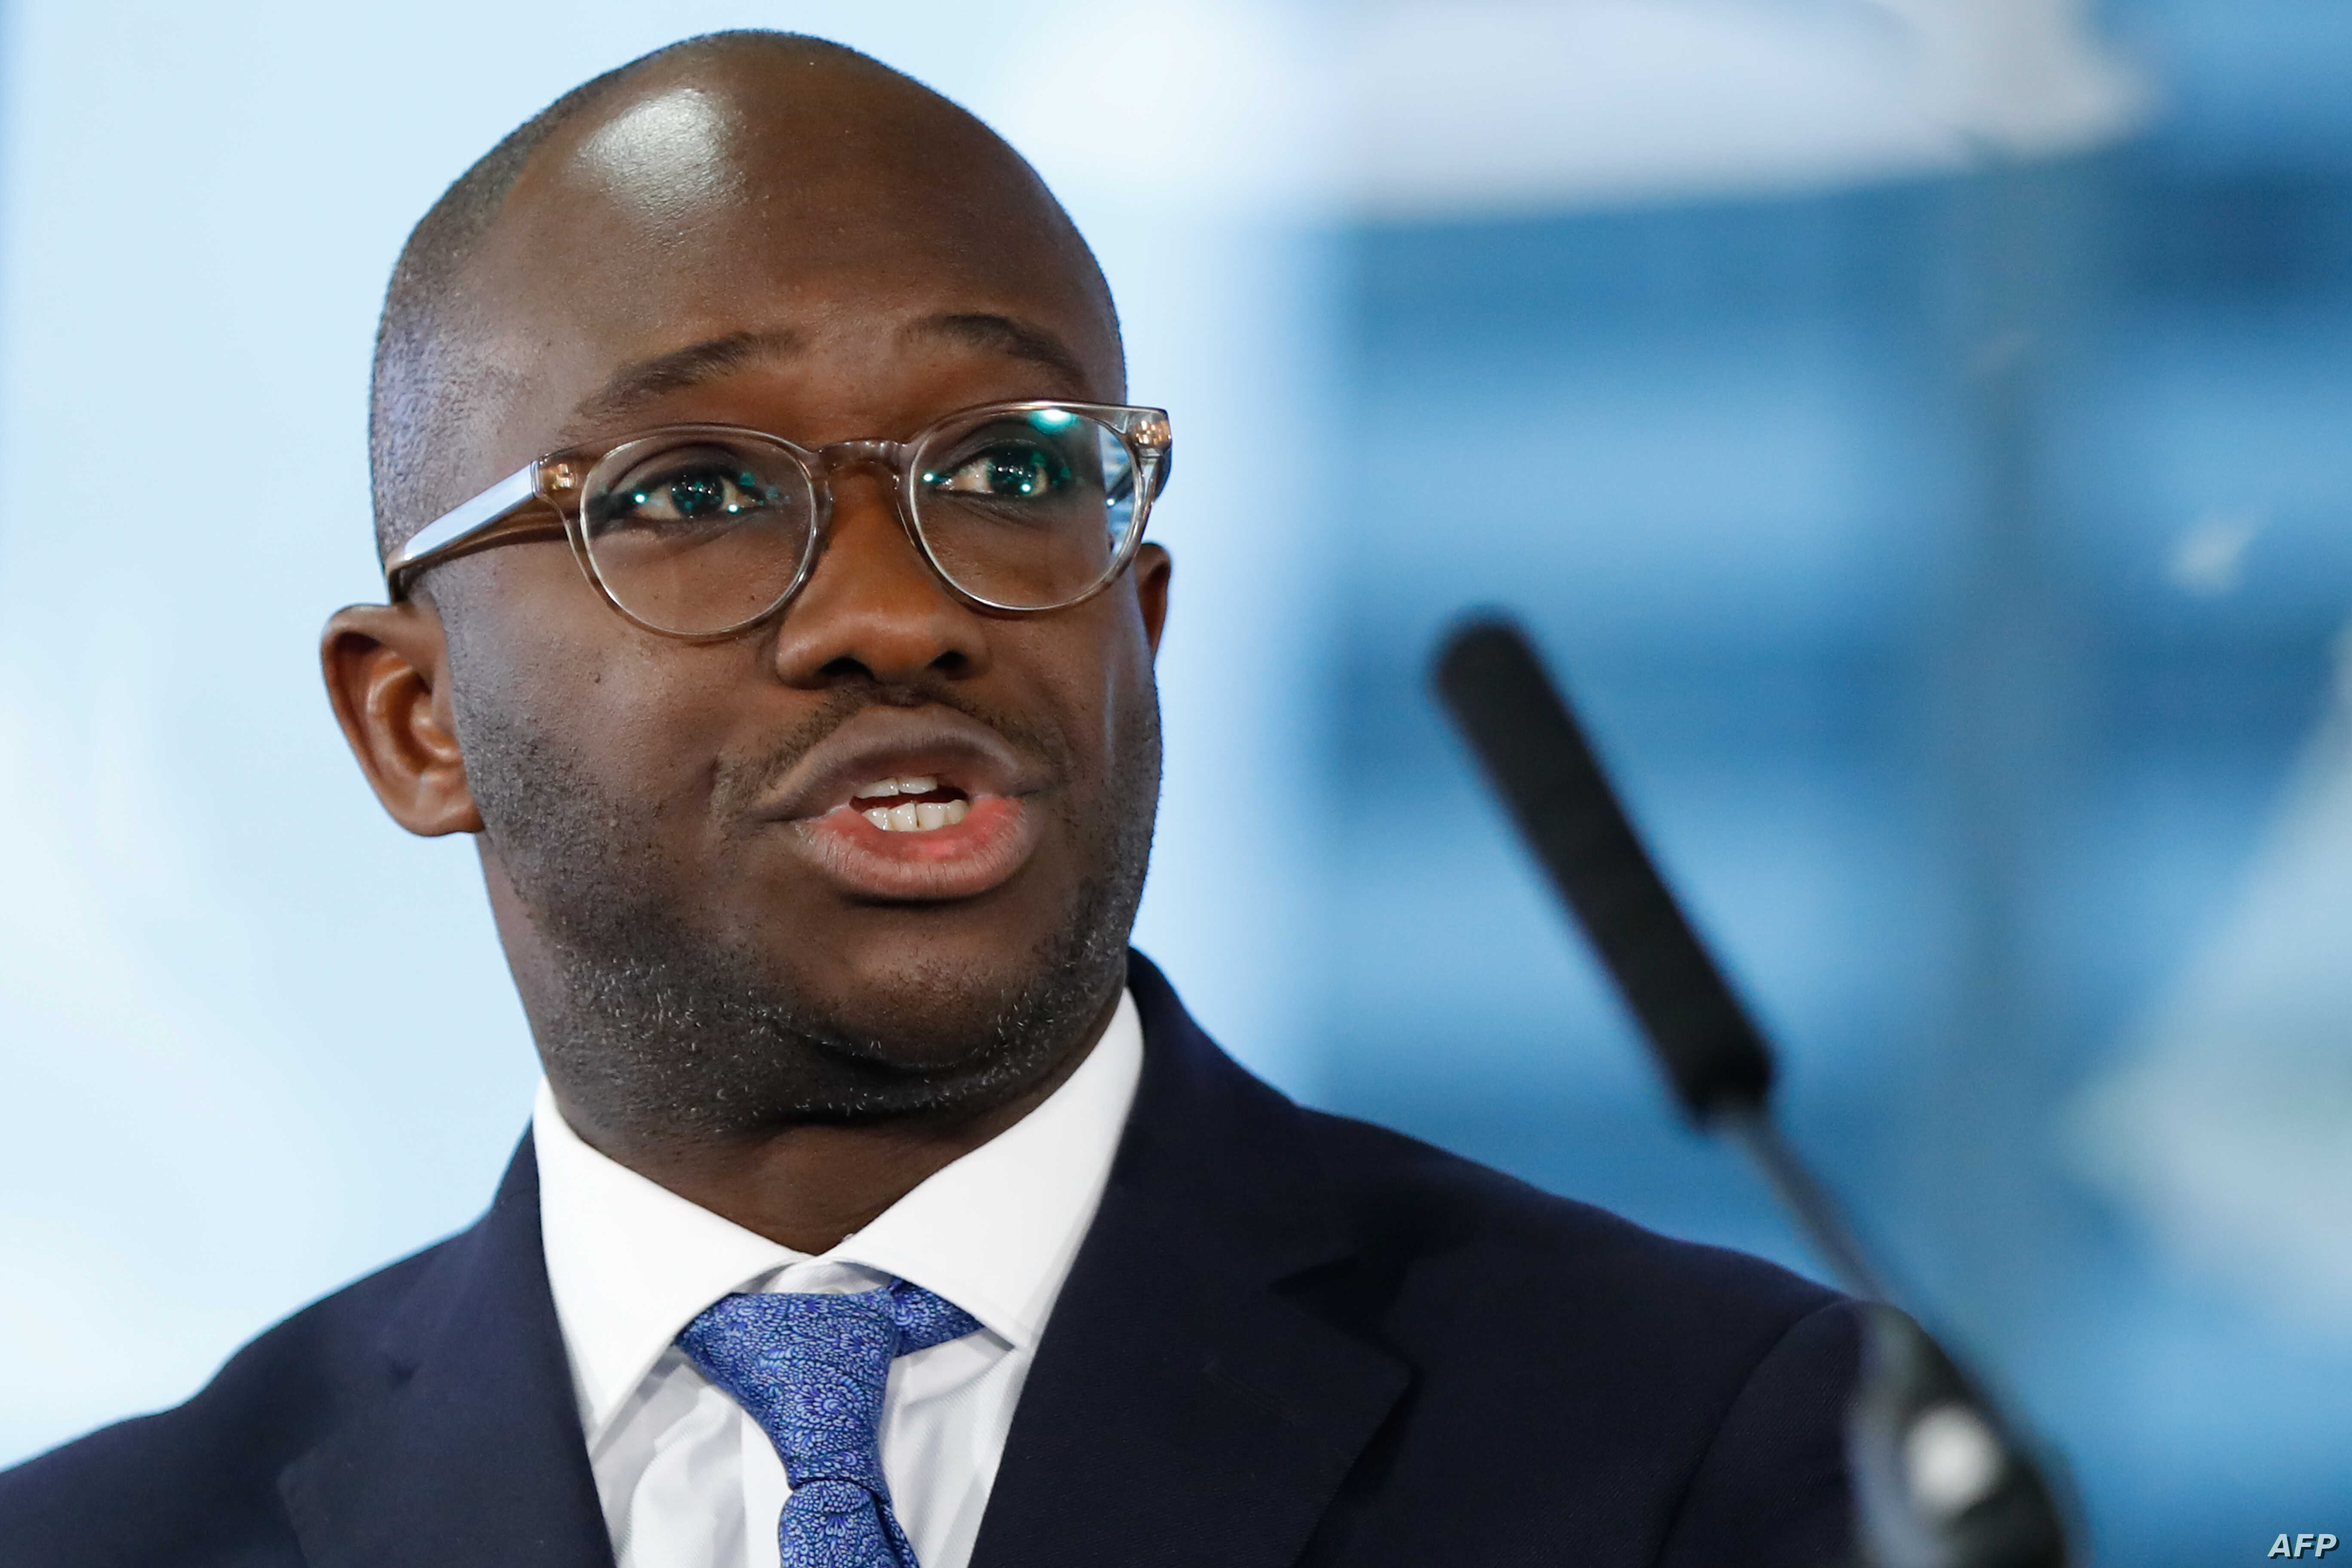 Conservative MP Sam Gyimah, the former universities minister who resigned over the prime minister's Brexit deal, speaks at an event organised by the People's Vote campaign group supporting a second referendum on the Brexit vote in London on January 7, 2019. (Photo by Tolga AKMEN / AFP)